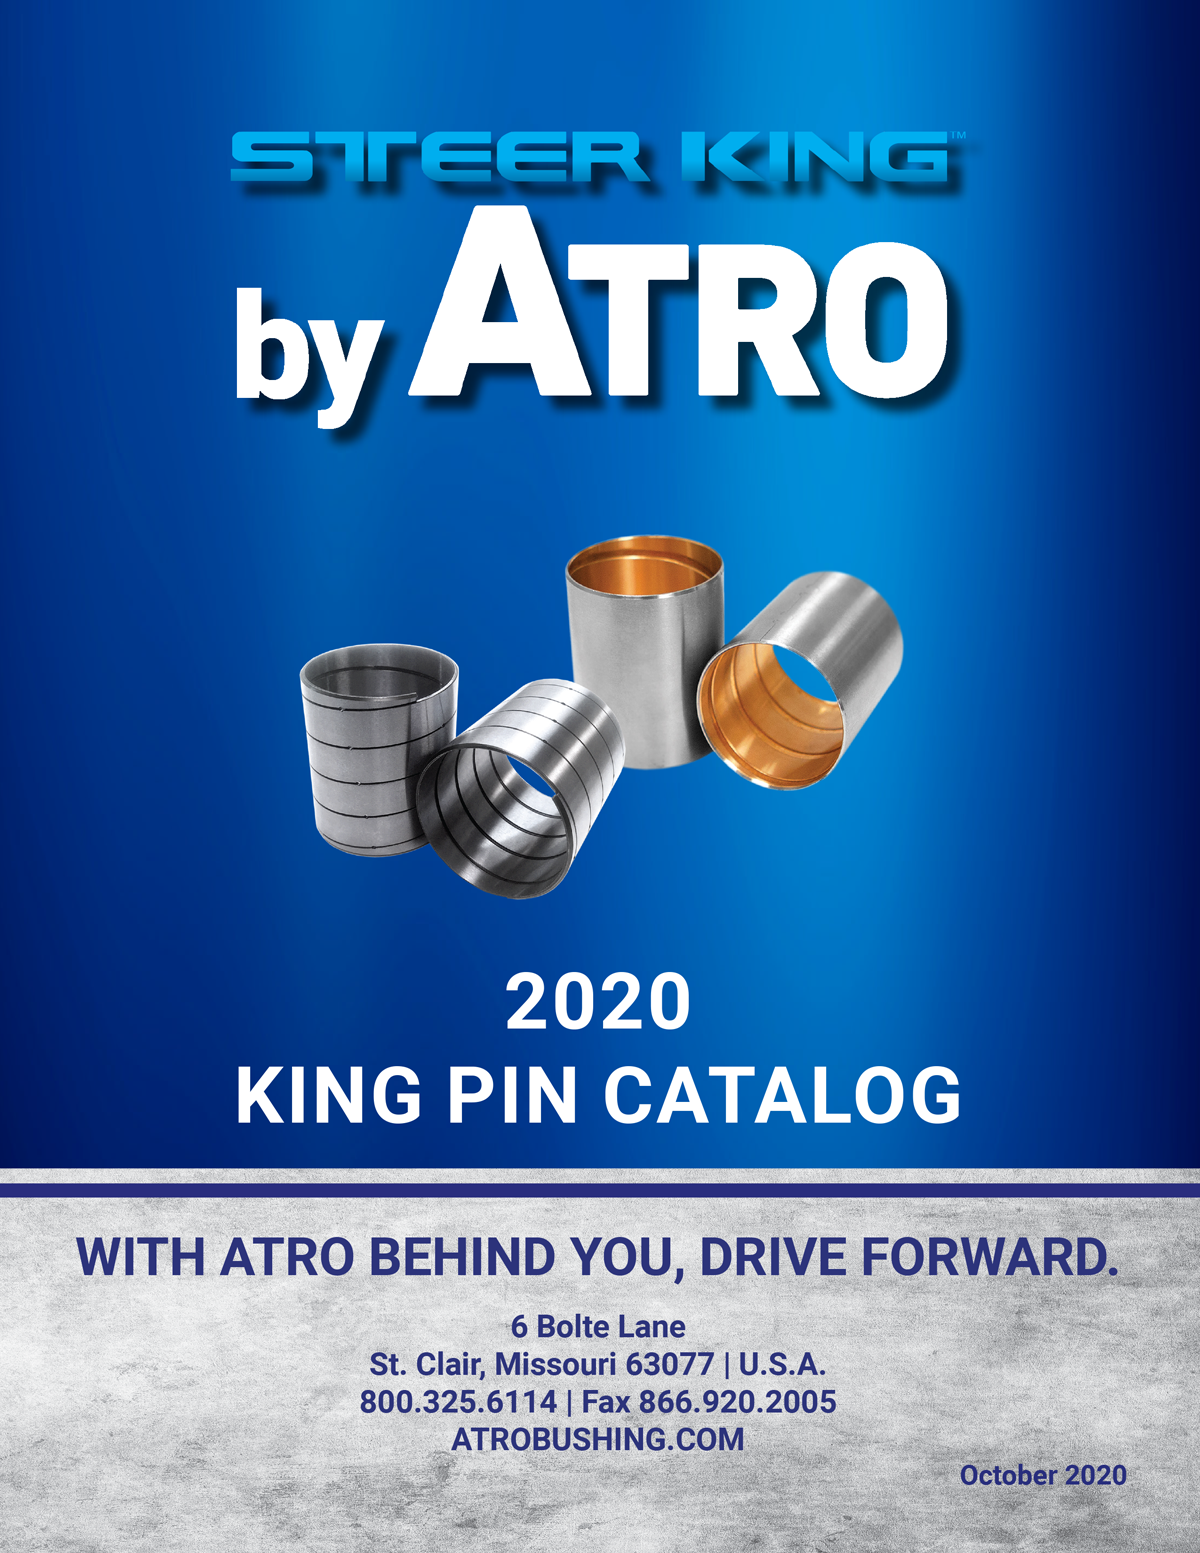 ATRO Steer King 2020 King Pin Catalog and Cross Reference